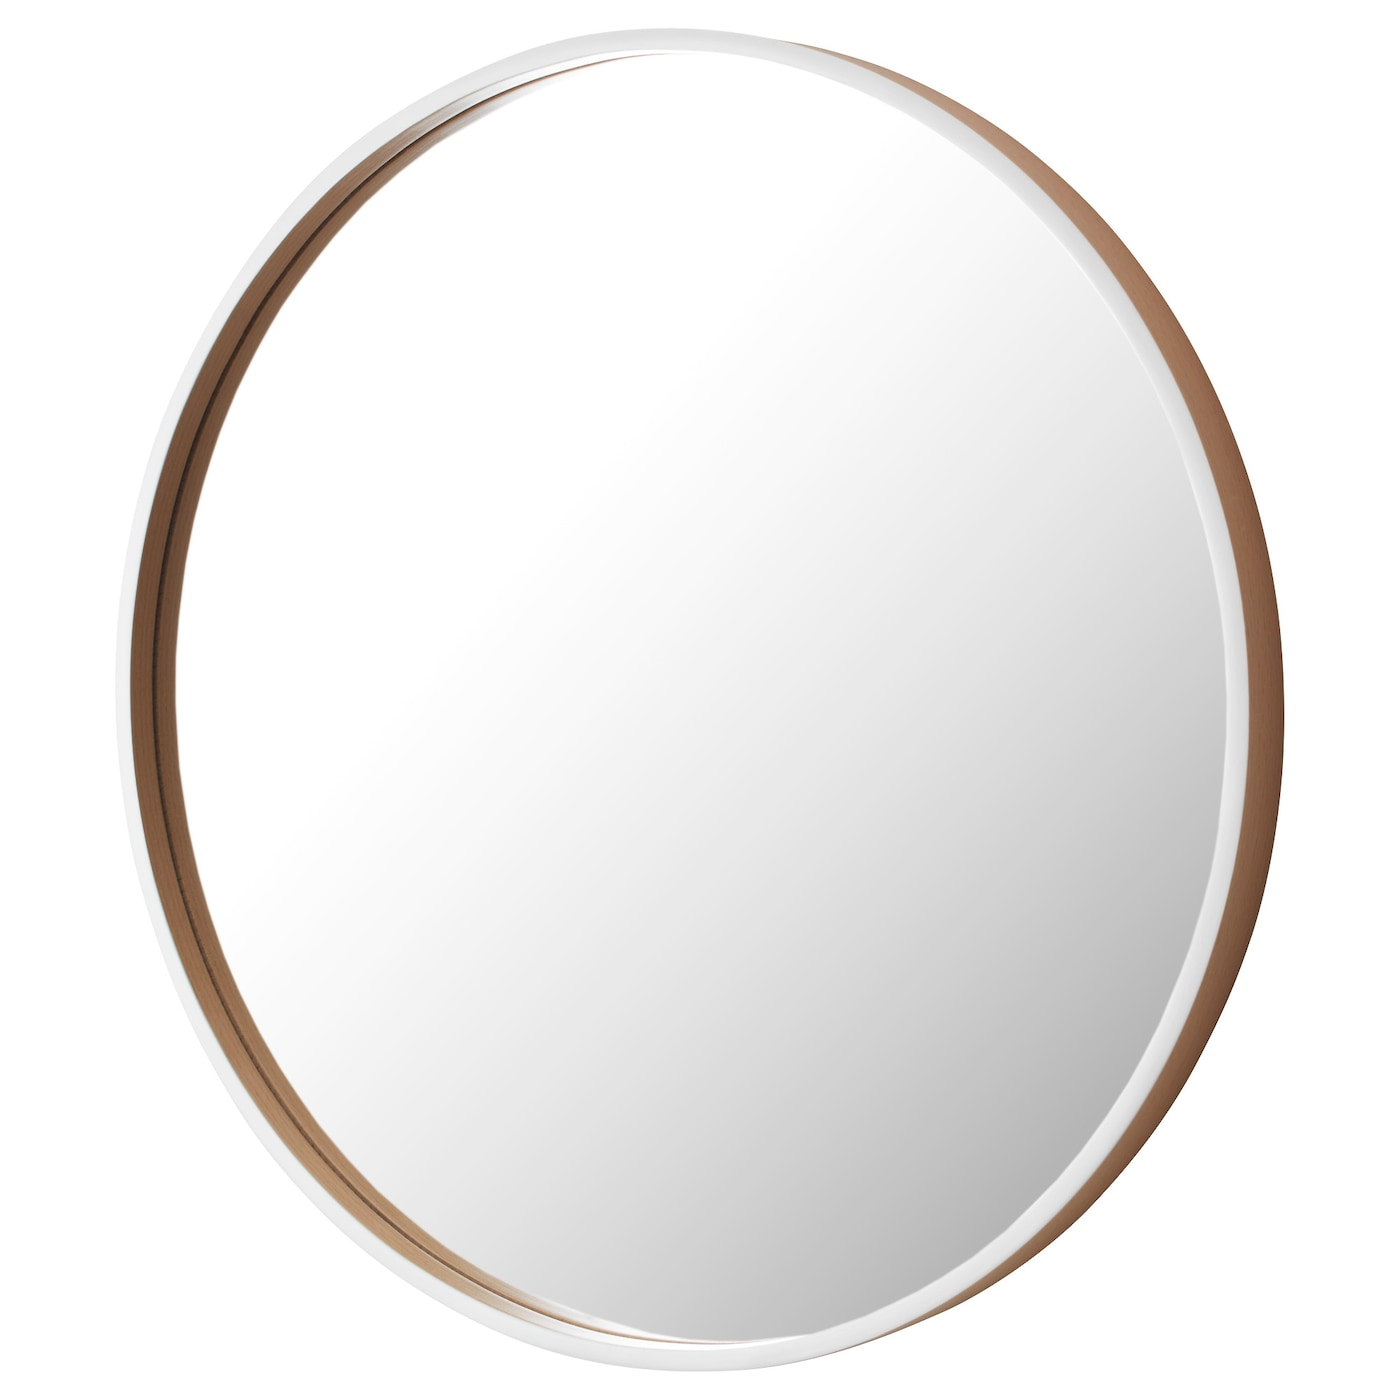 Skogsv g mirror white beech veneer 50 cm ikea for Where to find mirrors